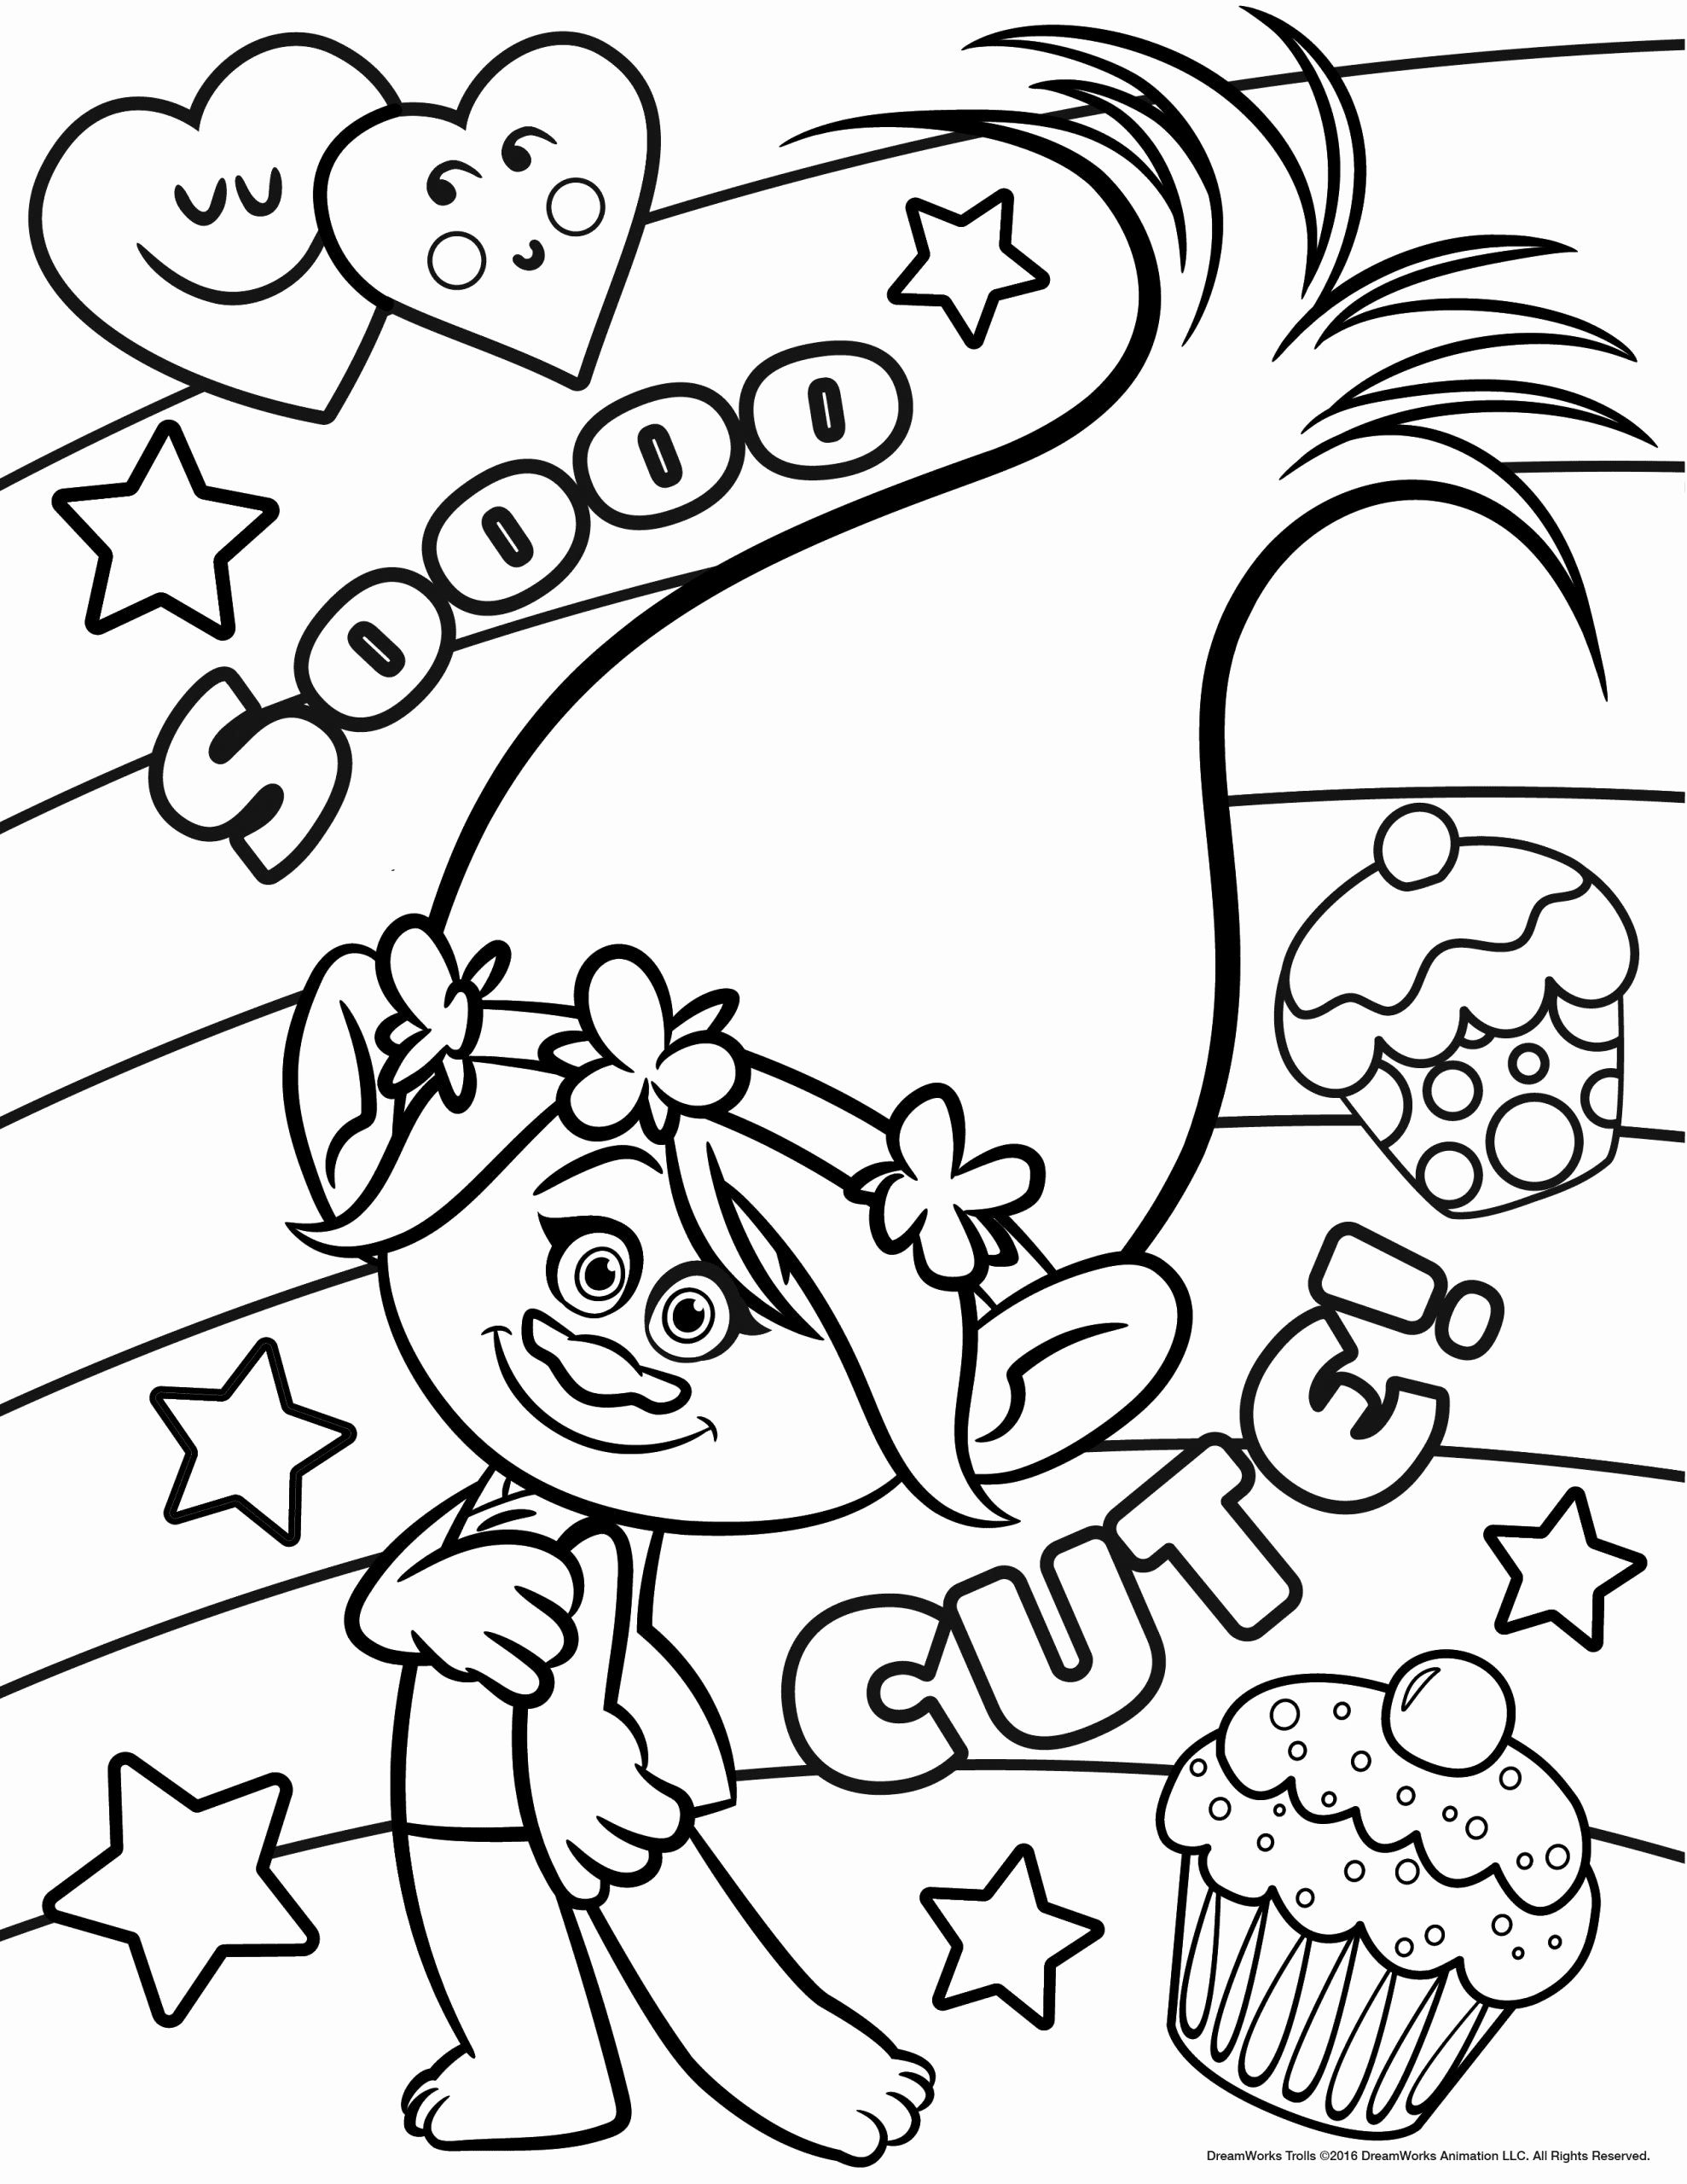 Summer Disney Kids Coloring Pages Poppy Coloring Page Free Disney Coloring Pages Disney Coloring Sheets